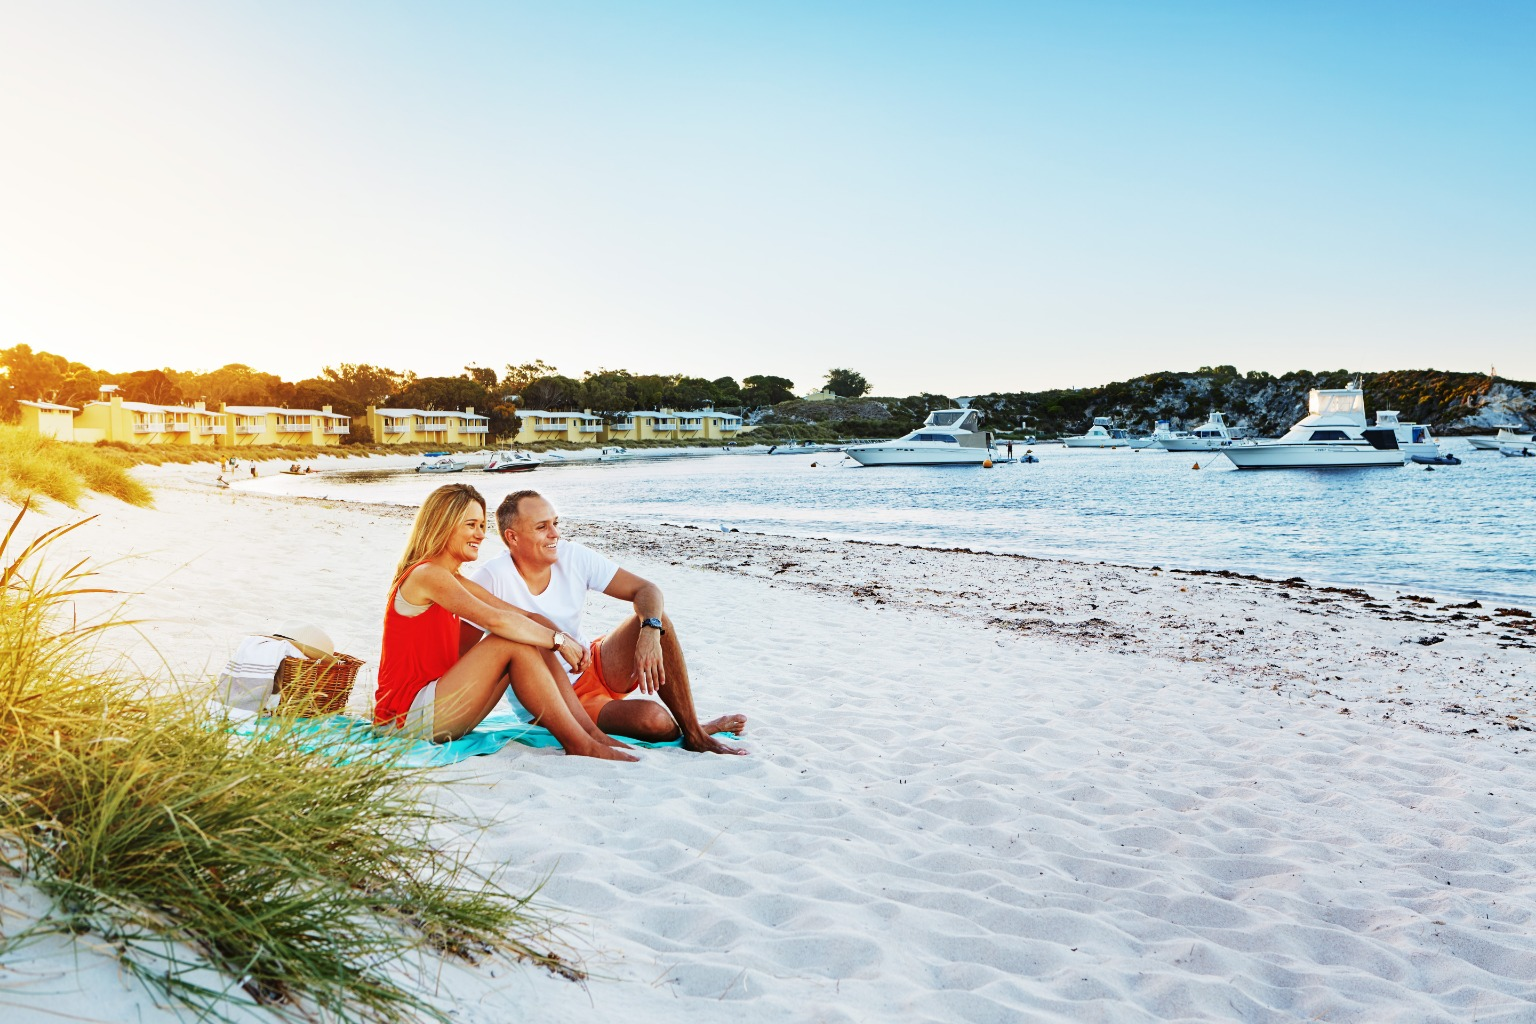 Best Beaches In The World 2020 Perth Beaches   i14 Worlds 2020 Perth